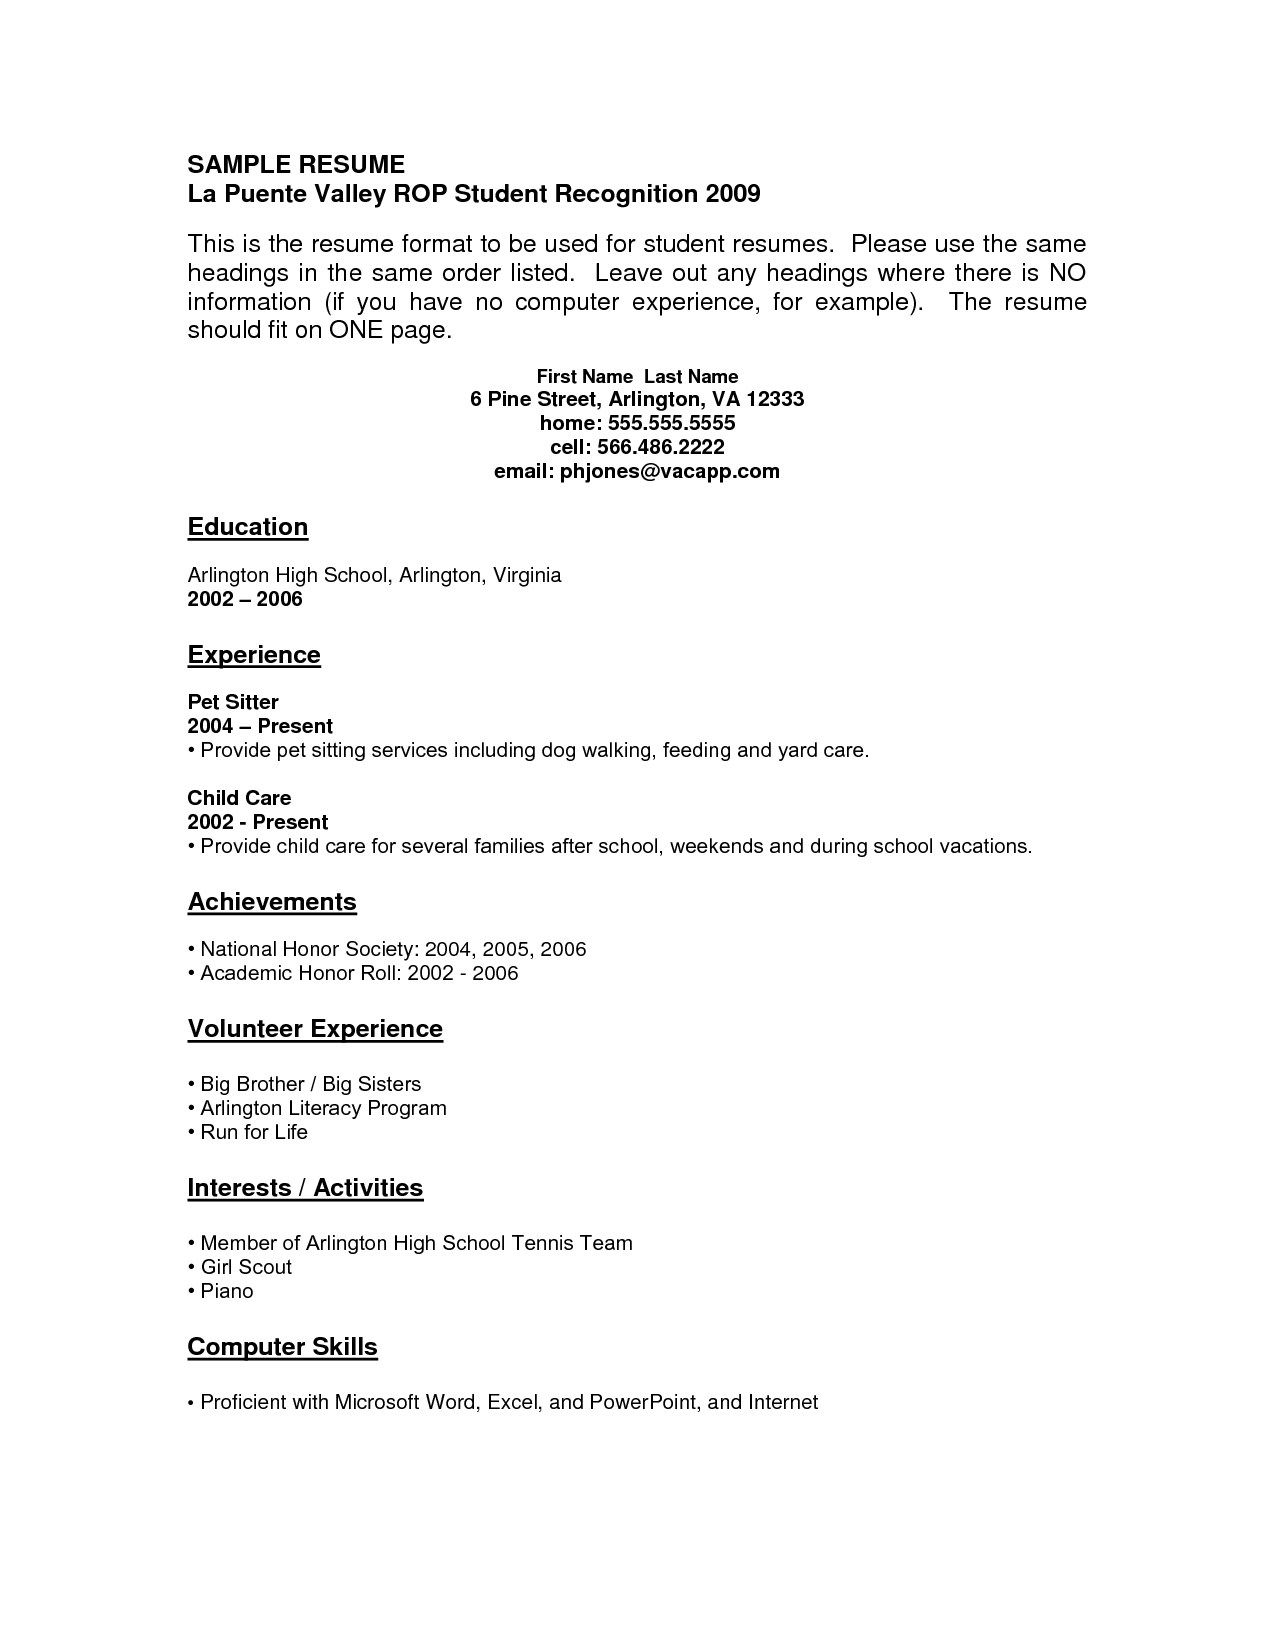 Resume Examples With No Job Experience Resume Templates Student Resume Template Job Resume Examples Resume No Experience